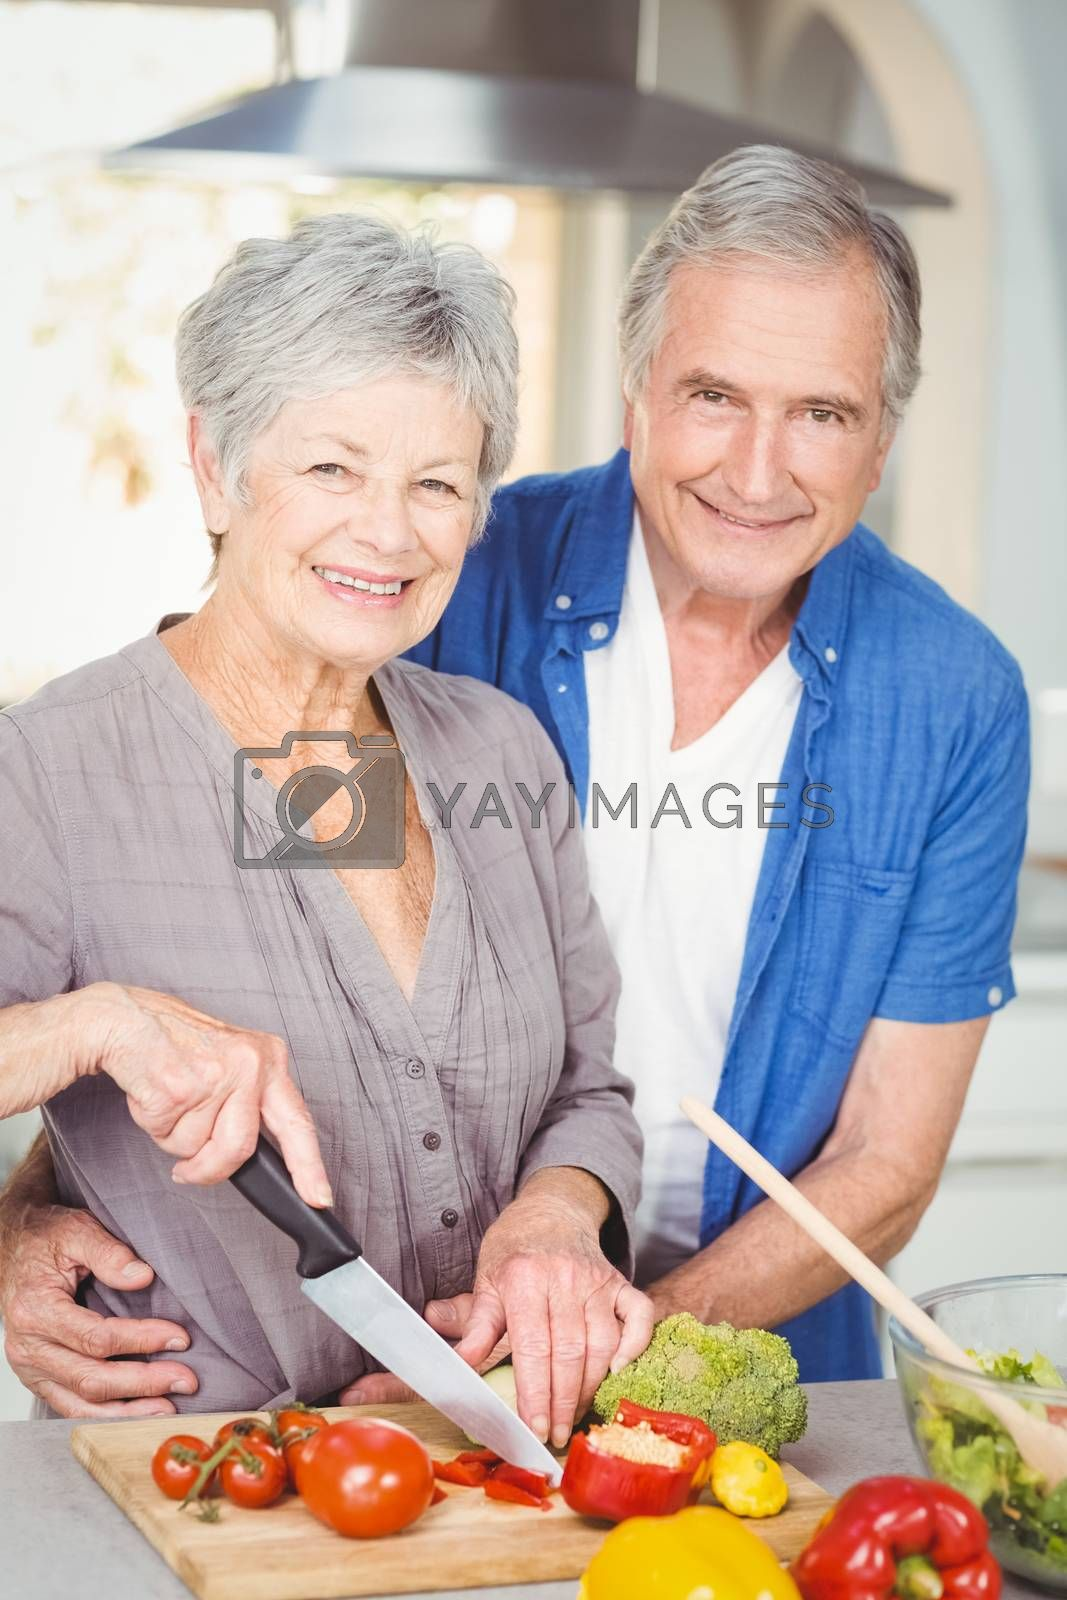 Portrait of senior woman cutting while man embracing in kitchen at home